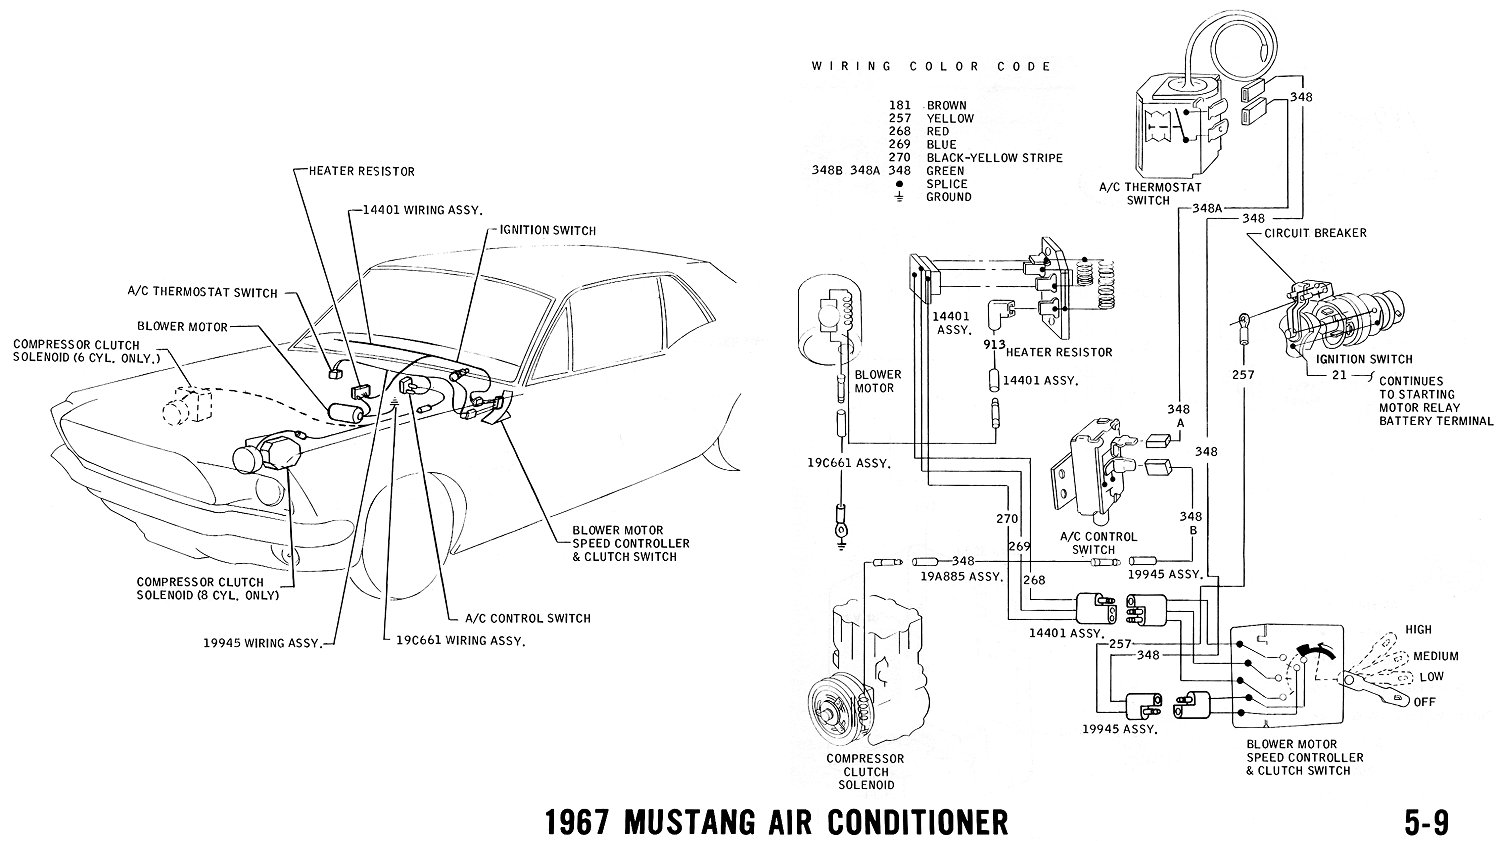 70 mustang heater wiring diagram trusted wiring diagram u2022 rh  soulmatestyle co 1984 Mustang Wiring Diagram PDF 1993 Mustang Wiring  Diagram PDF